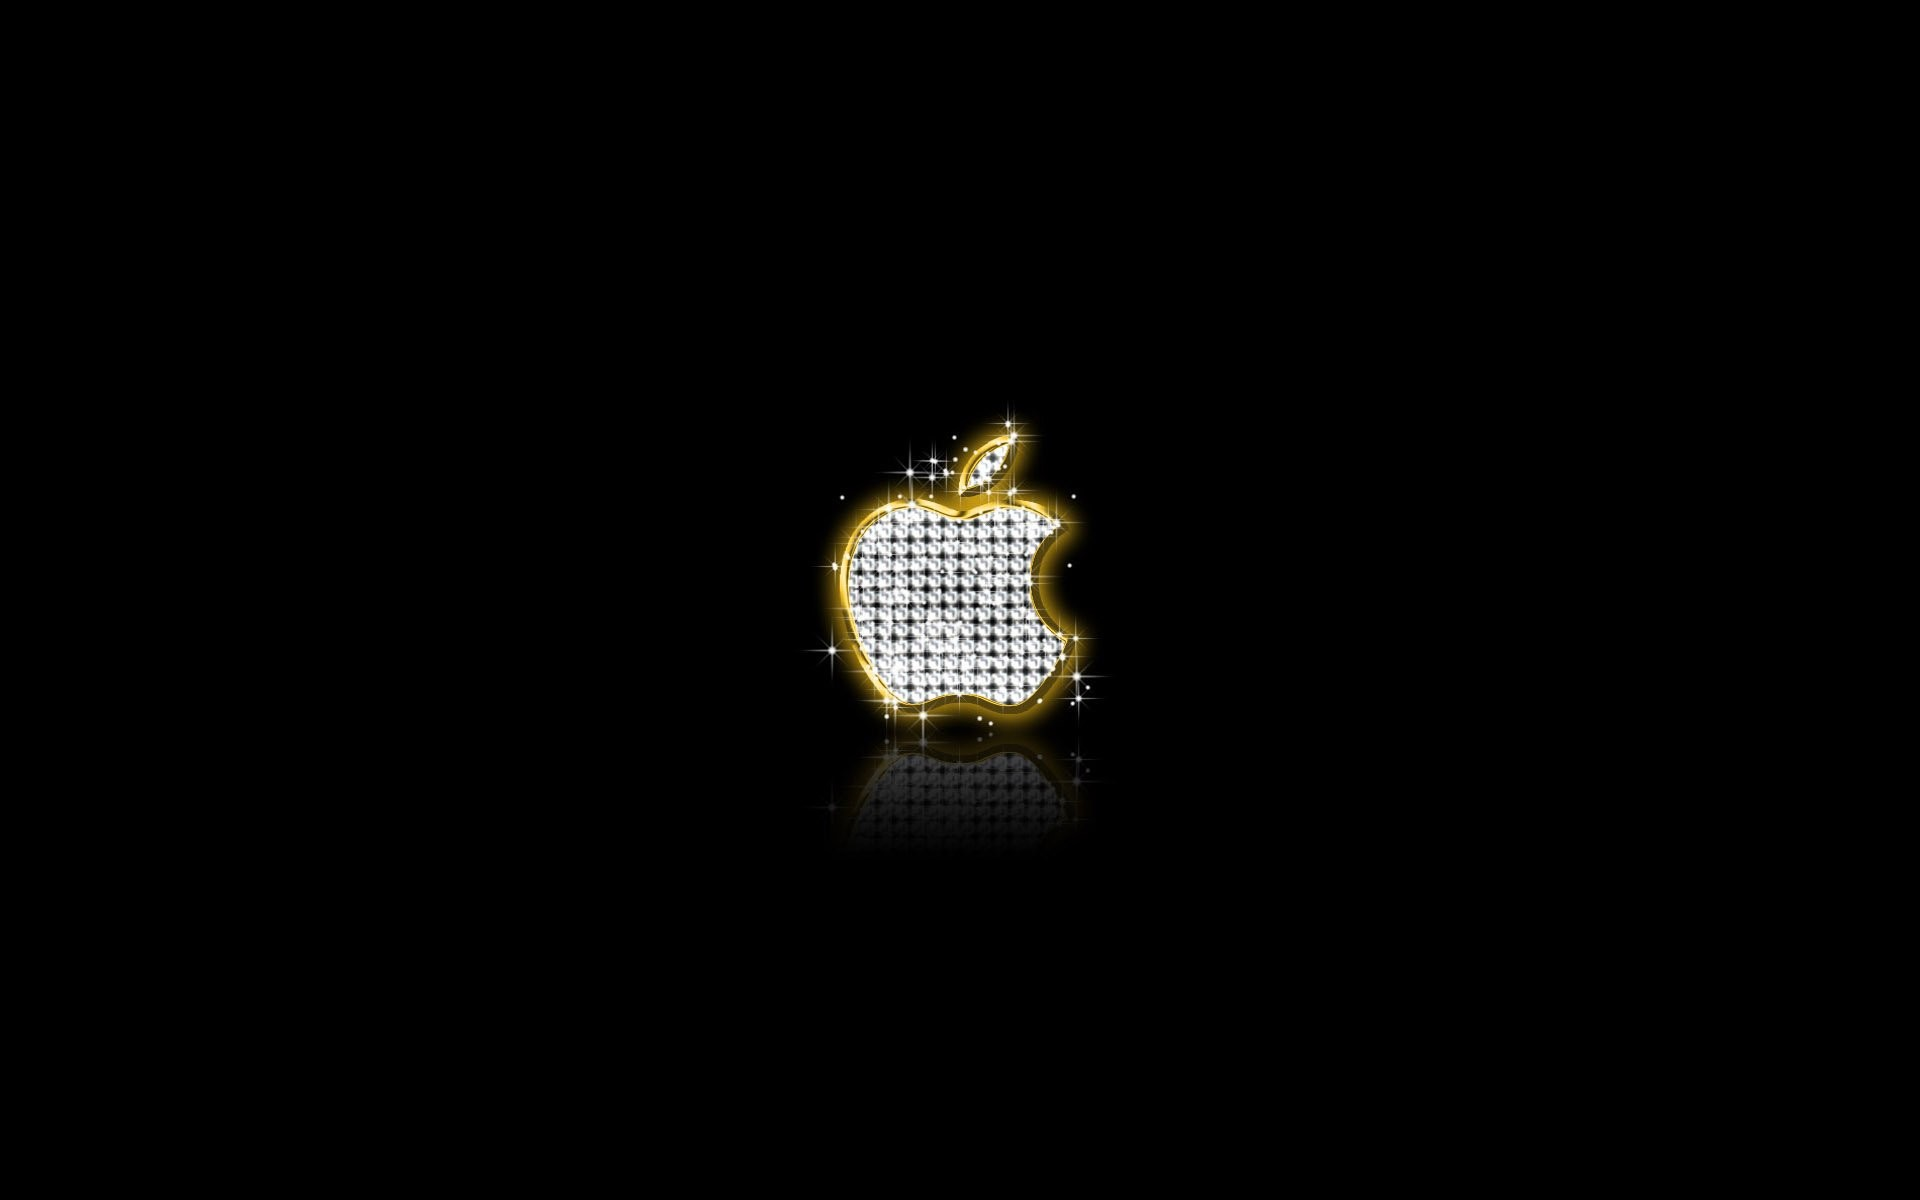 … iphone ipad; apple bling bling wallpaper apple computers 56 wallpapers  hd …